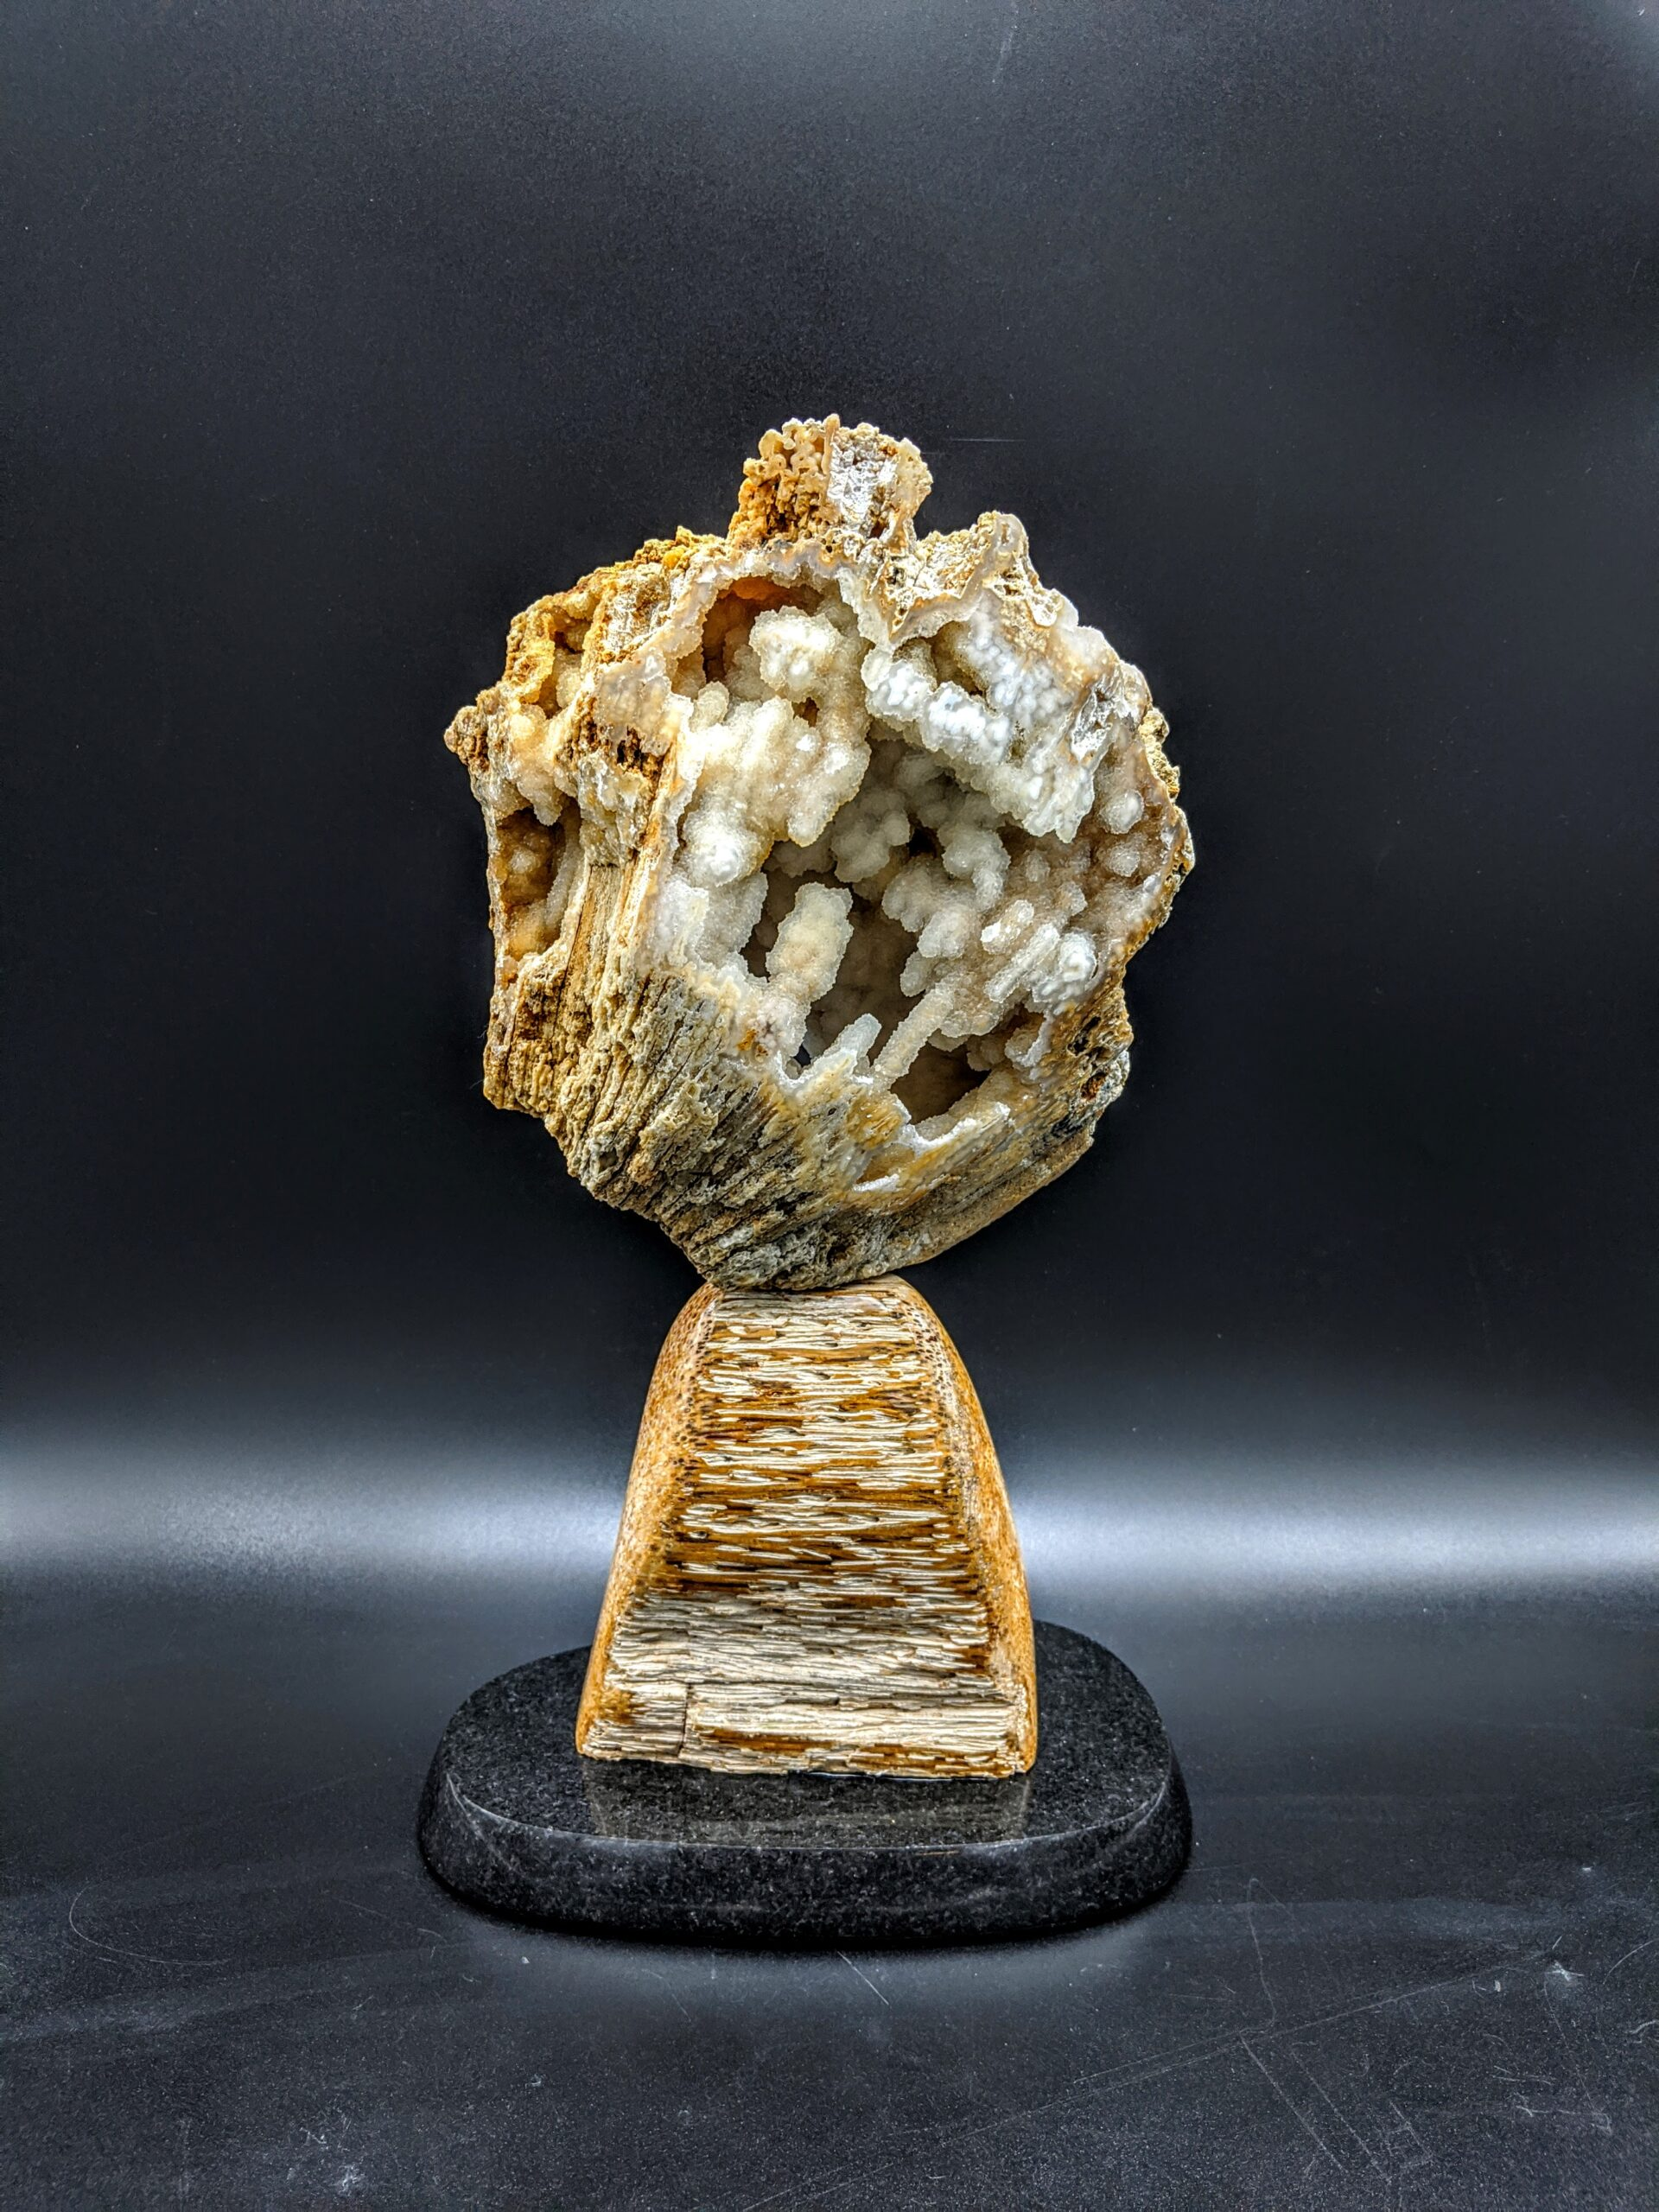 Agatized Coral with Palm Root sculpture